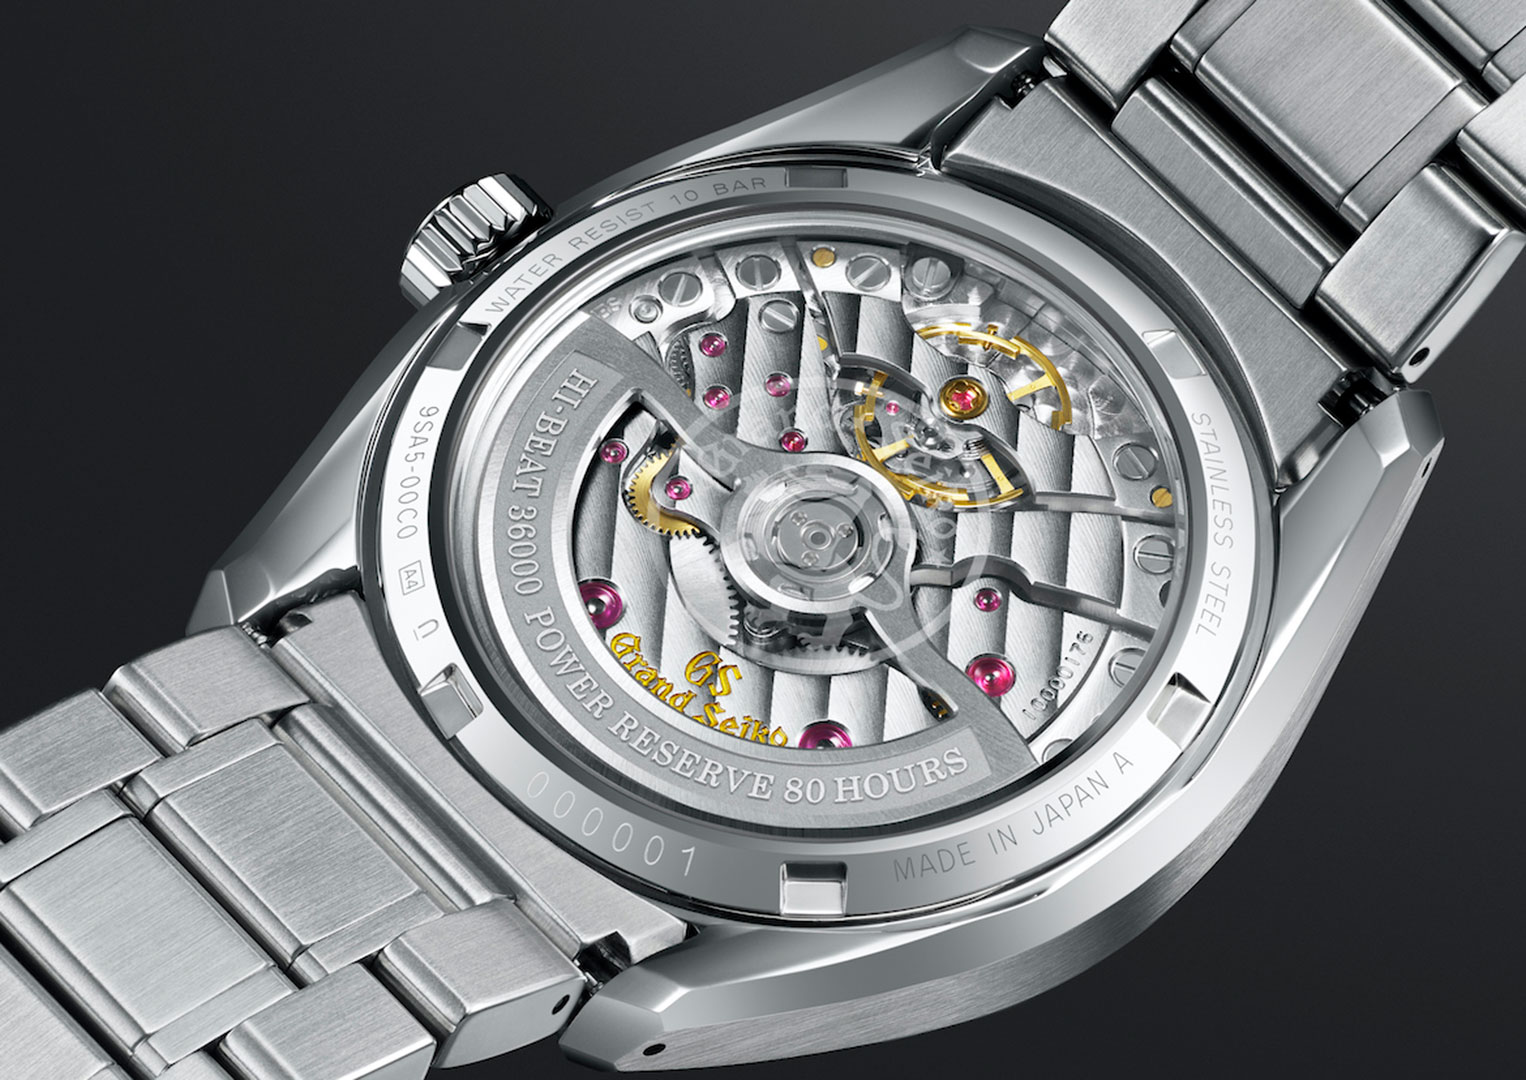 Manufacturing at Grand Seiko is split between two studios. The Shizukuishi Watch Studio which makes all of Grand Seiko's mechanical watches and the Shinshu Watch Studio that makes all of its Spring Drive and quartz-powered watches